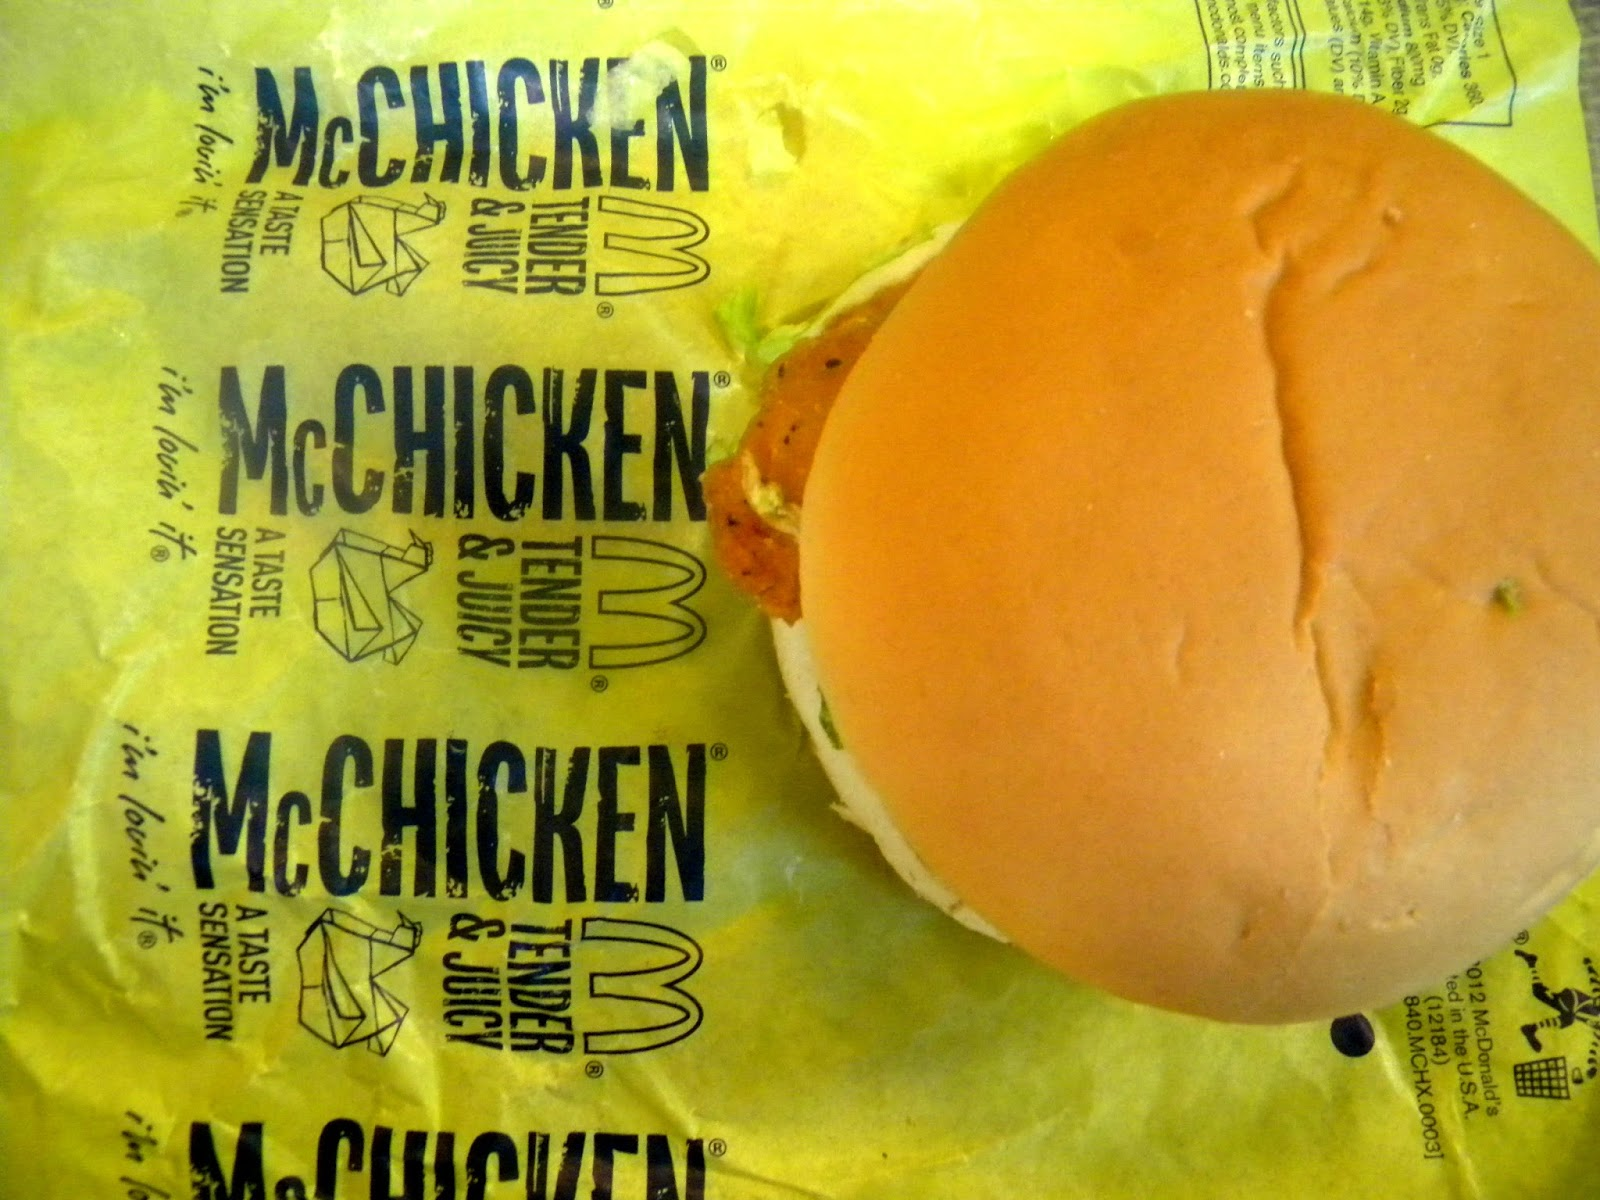 McChicken photo/editing by sookietex